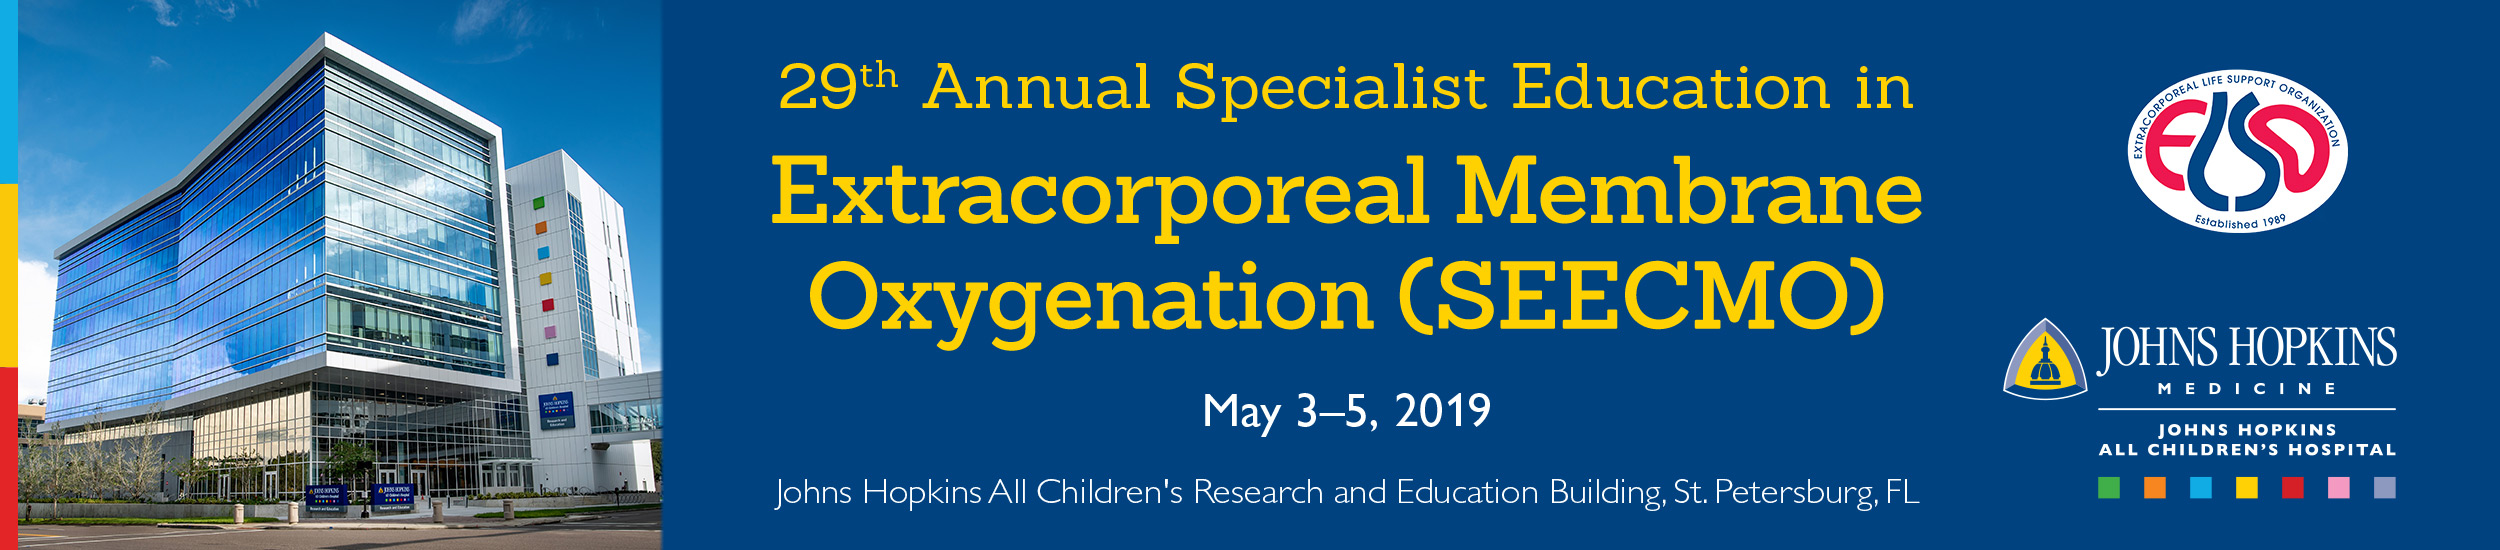 29th Annual Specialist Education in Extracorporeal Membrane Oxygenation (SEECMO)